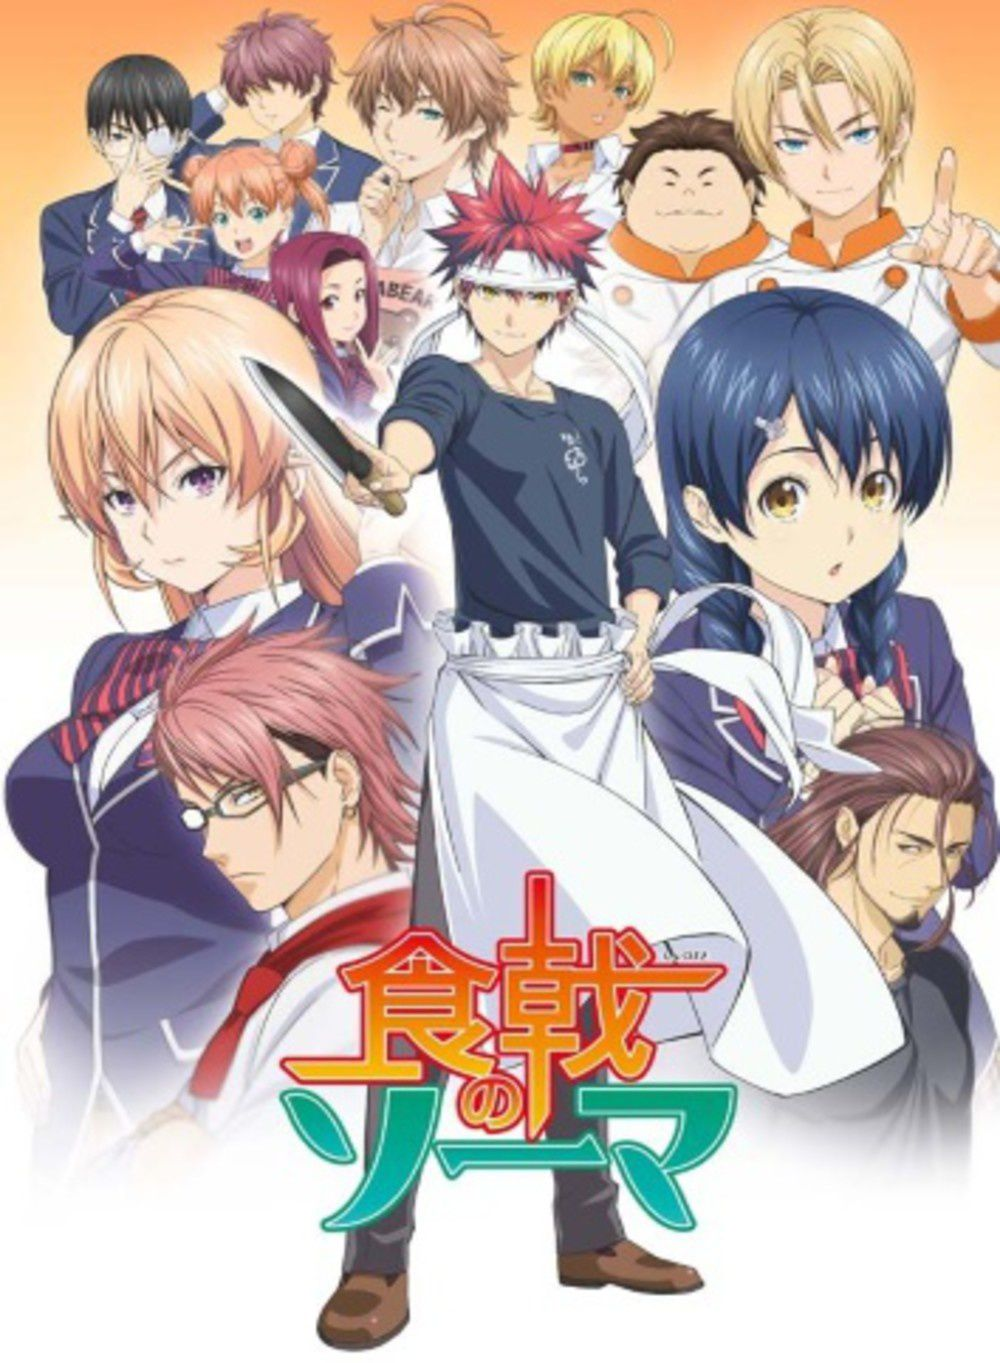 FLASH MANGAS / ANIMES REVIEWS #1 ~ FOOD WARS ! & LE RAKUGO OU LA VIE